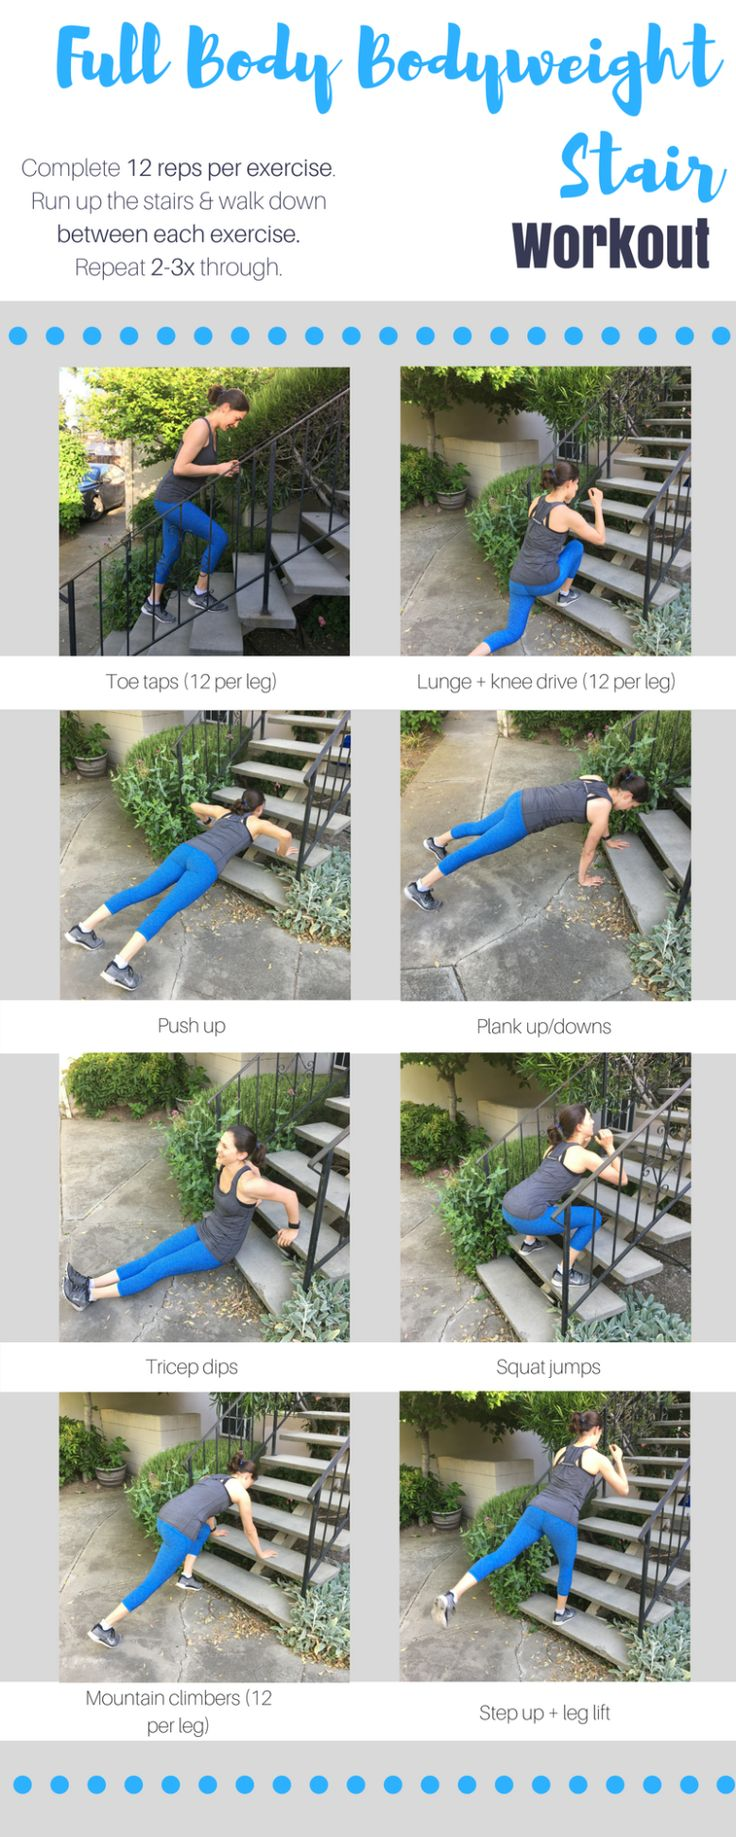 Today's full body bodyweight stair workout will work your entire body. One round will take about 6 minutes to complete, and I recommend completing 2-3 rounds for a full workout.